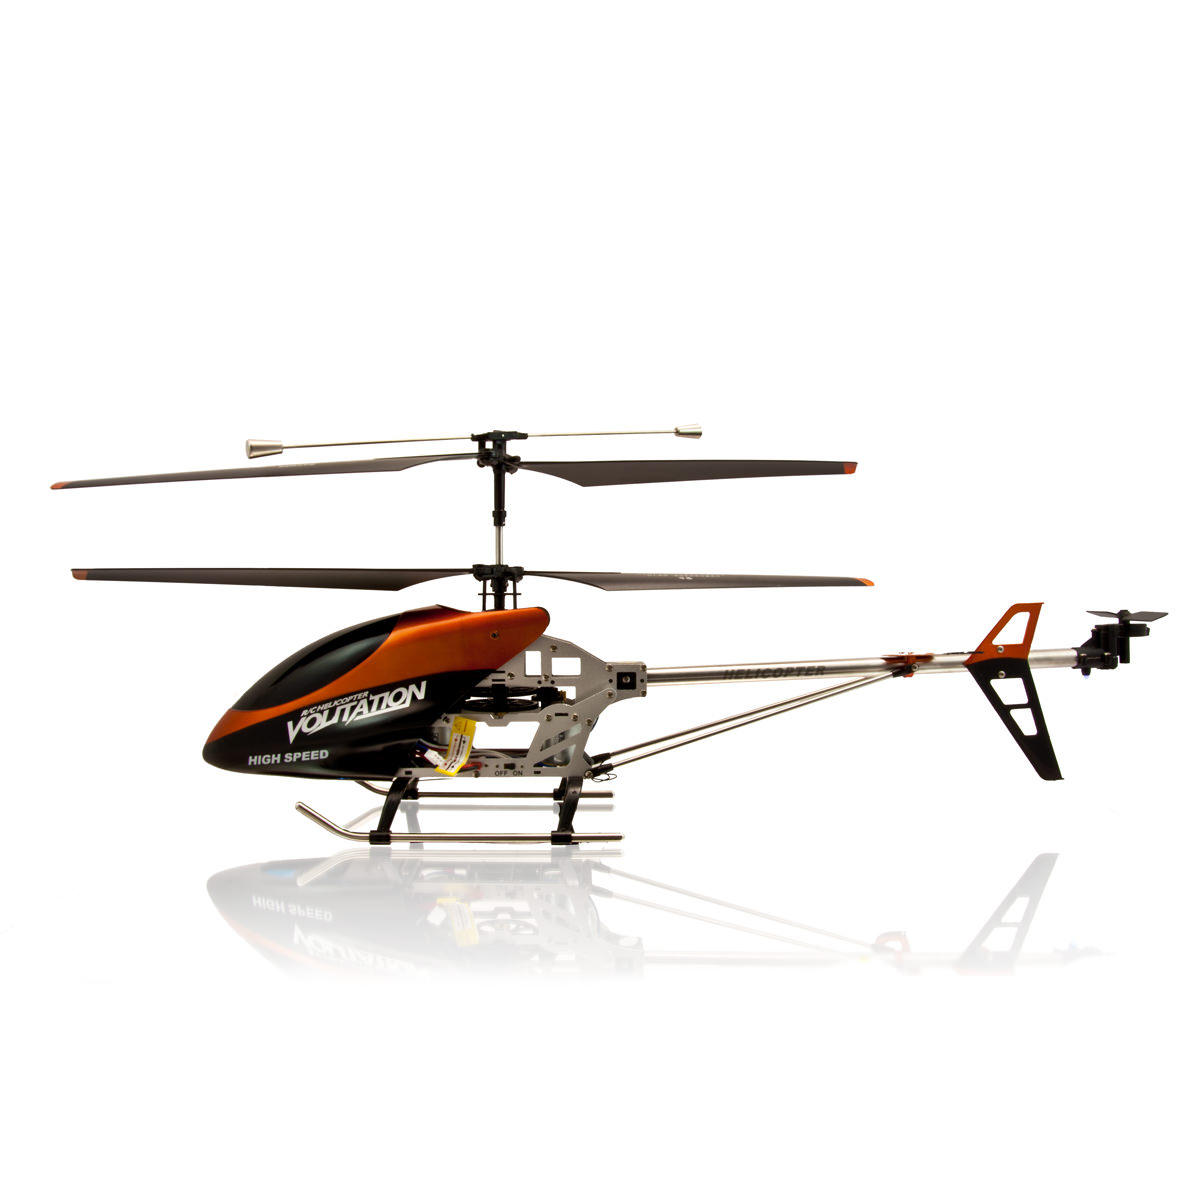 Elicottero 9053 : Double horse volitation rc helicopter at hobby warehouse